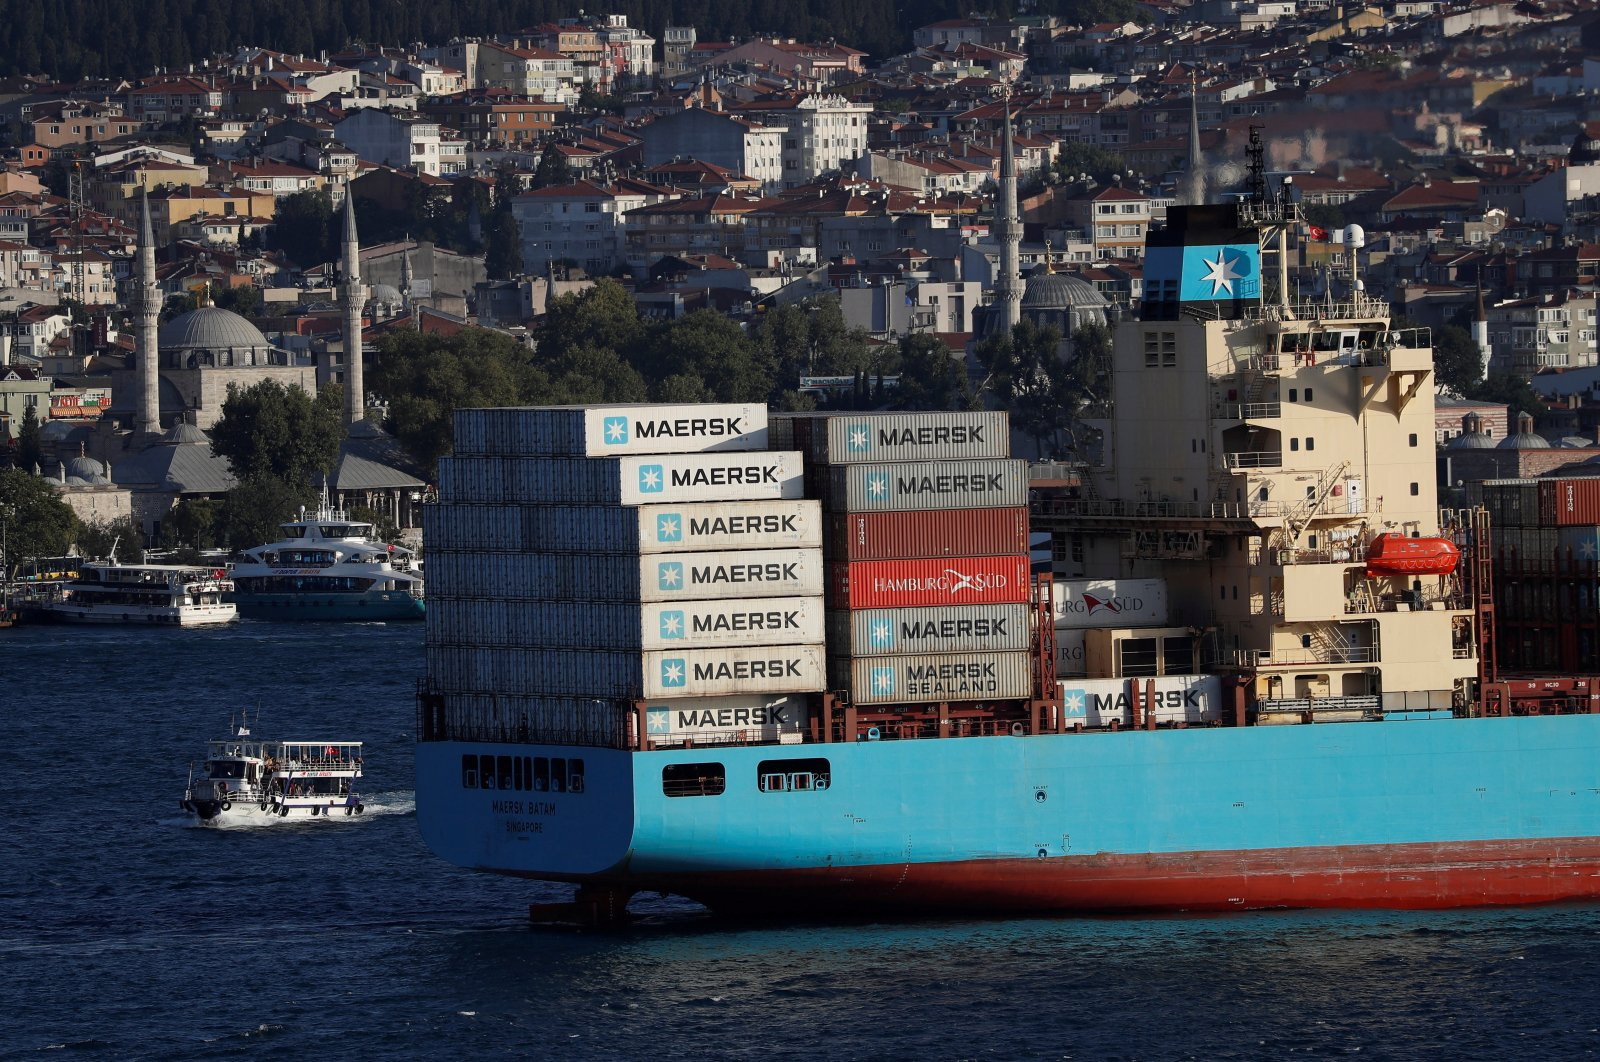 The Maersk Line container ship, Maersk Batam, sails in the Bosporus, on its way to the Mediterranean Sea, Istanbul, Turkey August 10, 2018. (Reuters Photo)